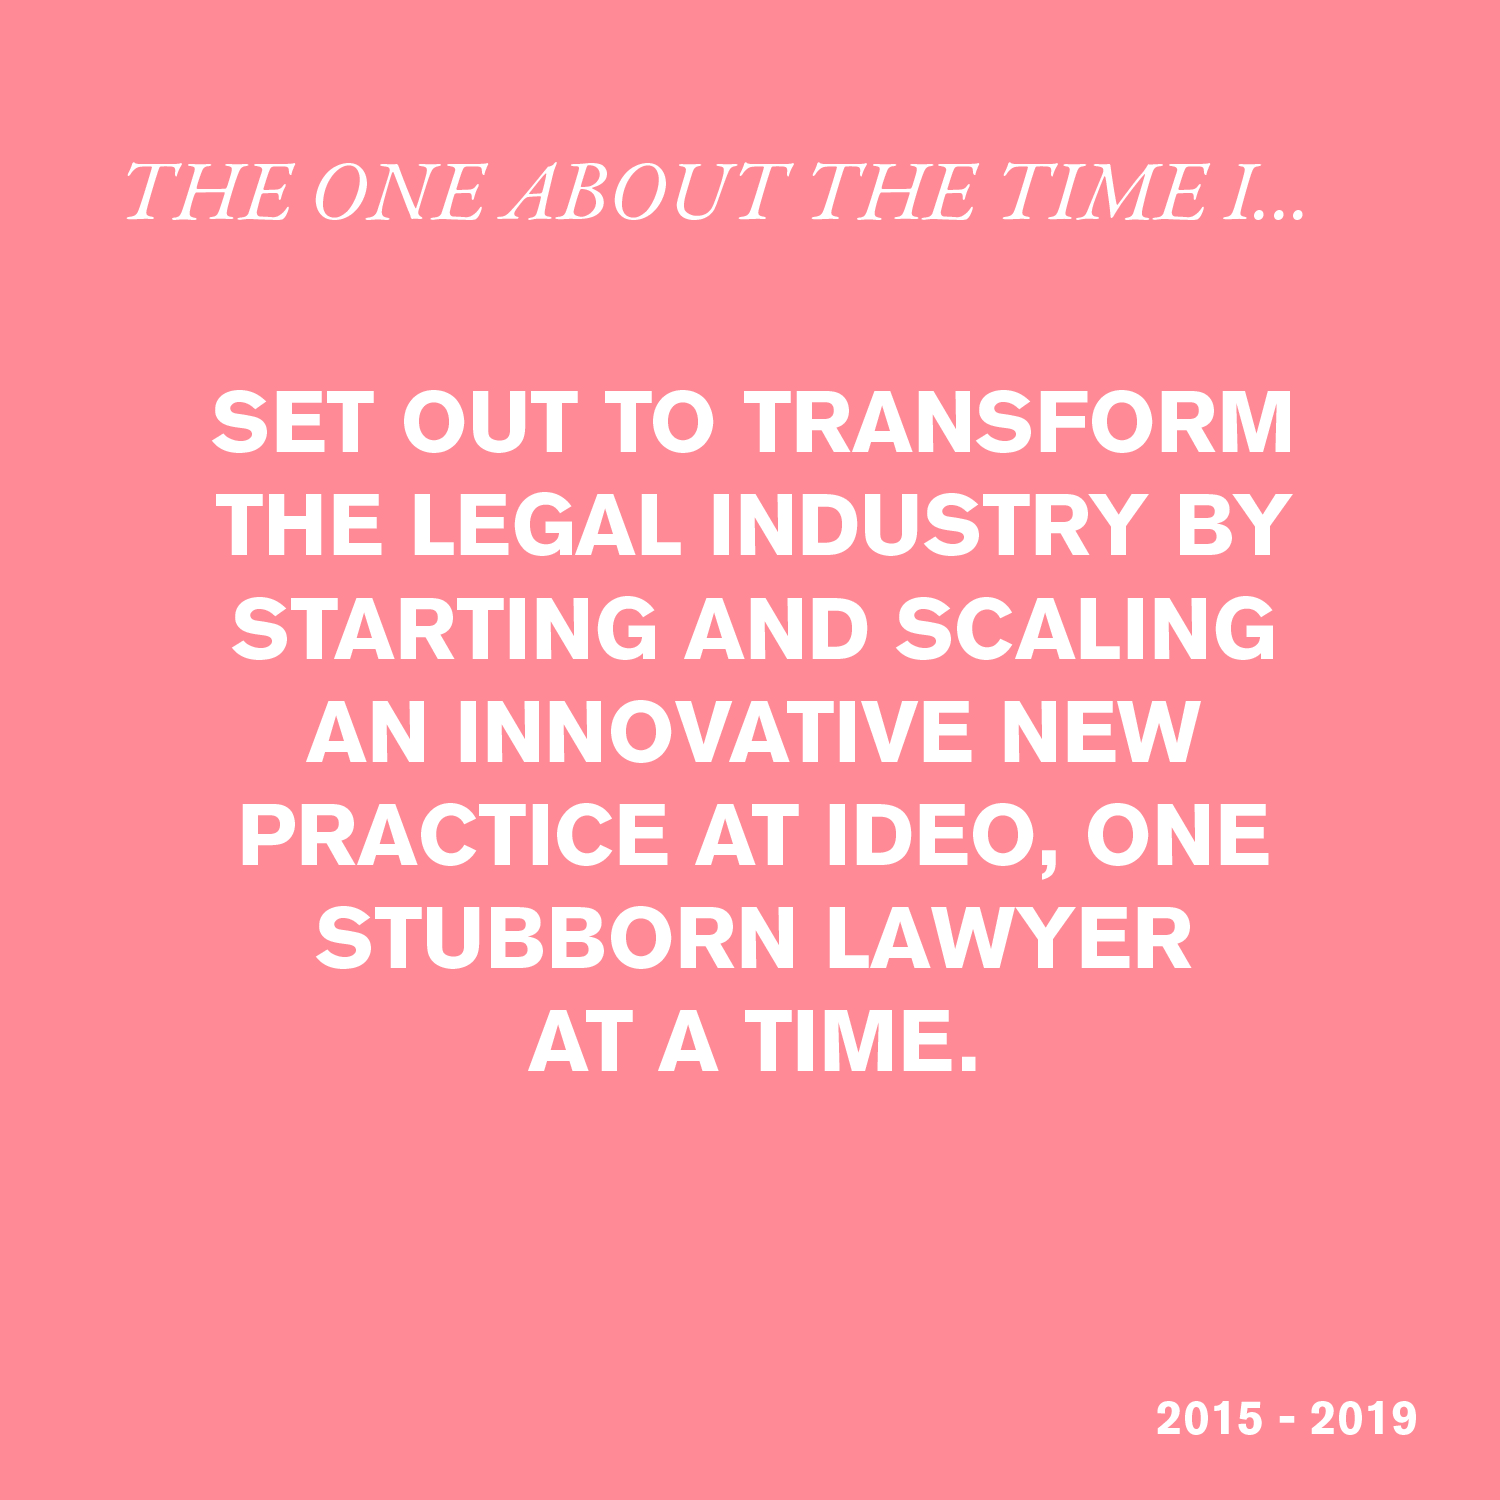 IDEO Legal Innovation